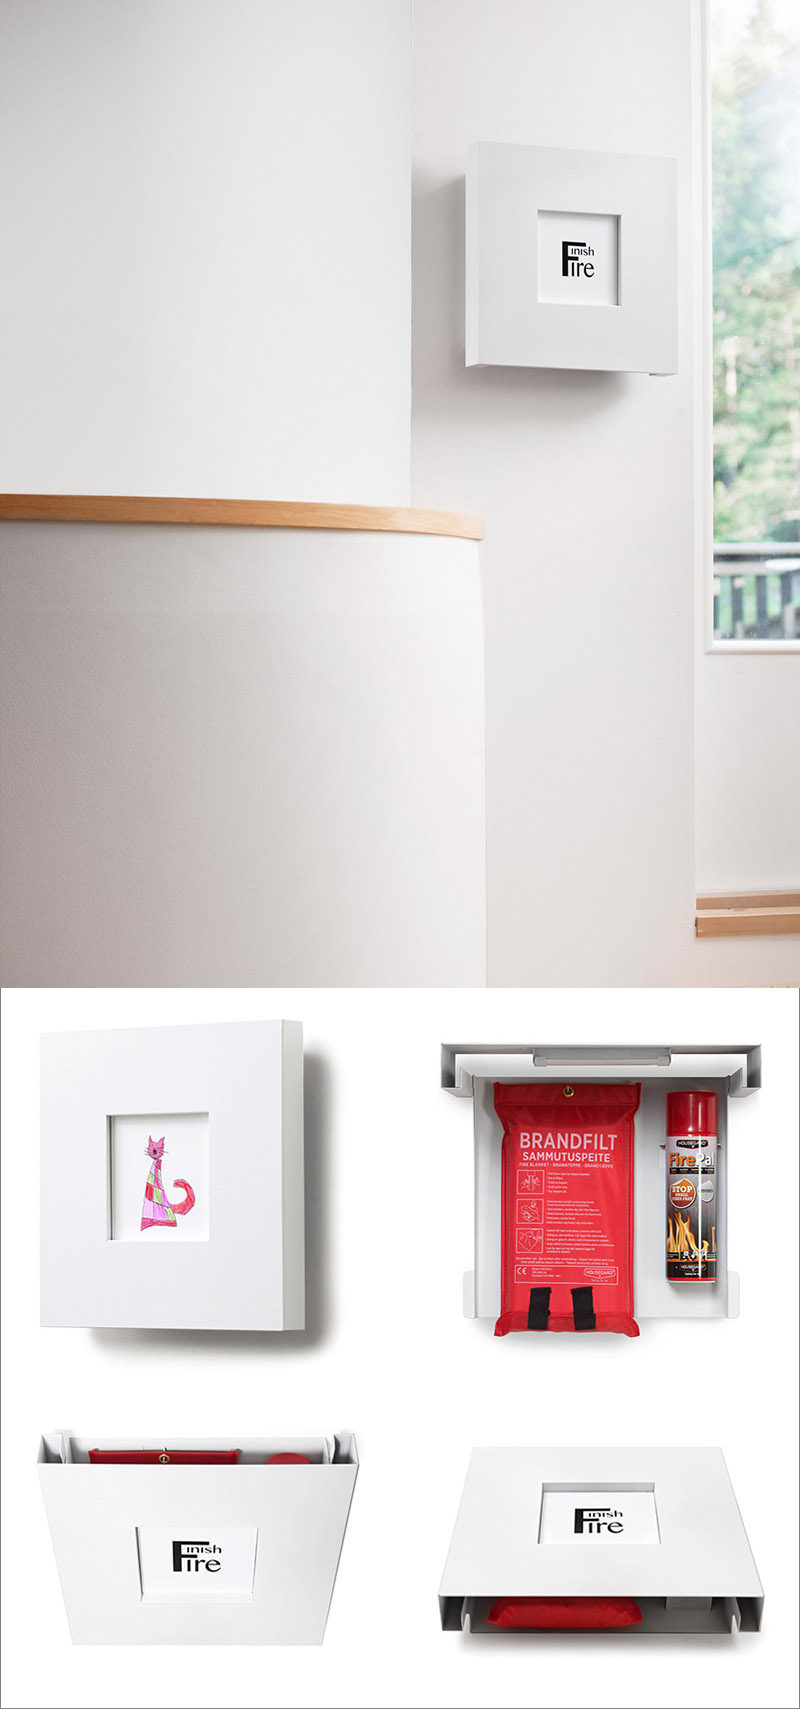 Finishfire have designed a stylish picture frame that hides a small fire extinguisher and a fire blanket.